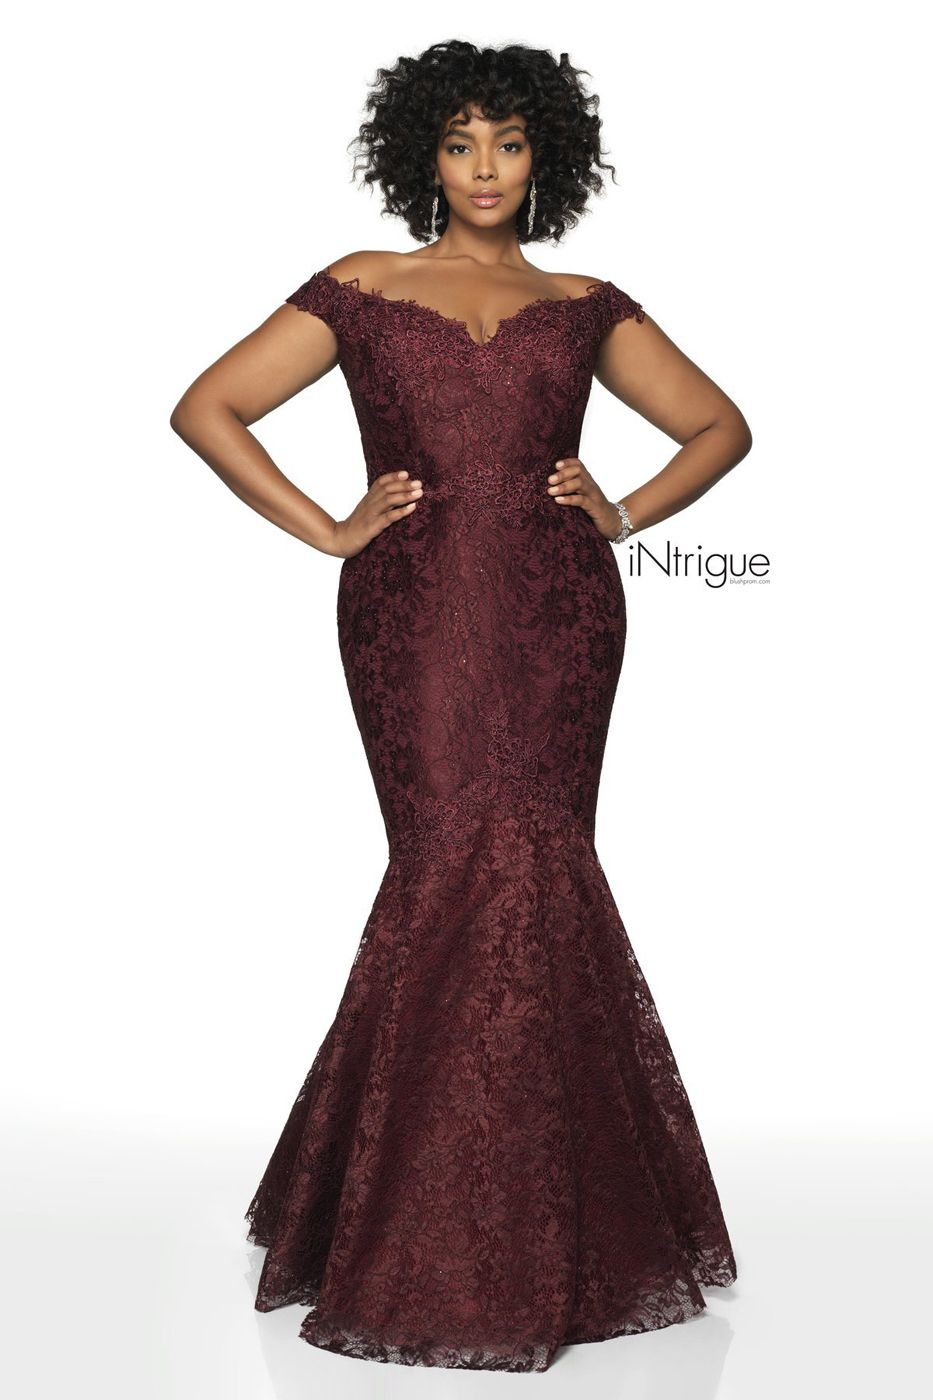 d4348a14cb9 This Blush Intrigue 425W wine red plus size formal dress offers a mermaid  silhouette in allover lace